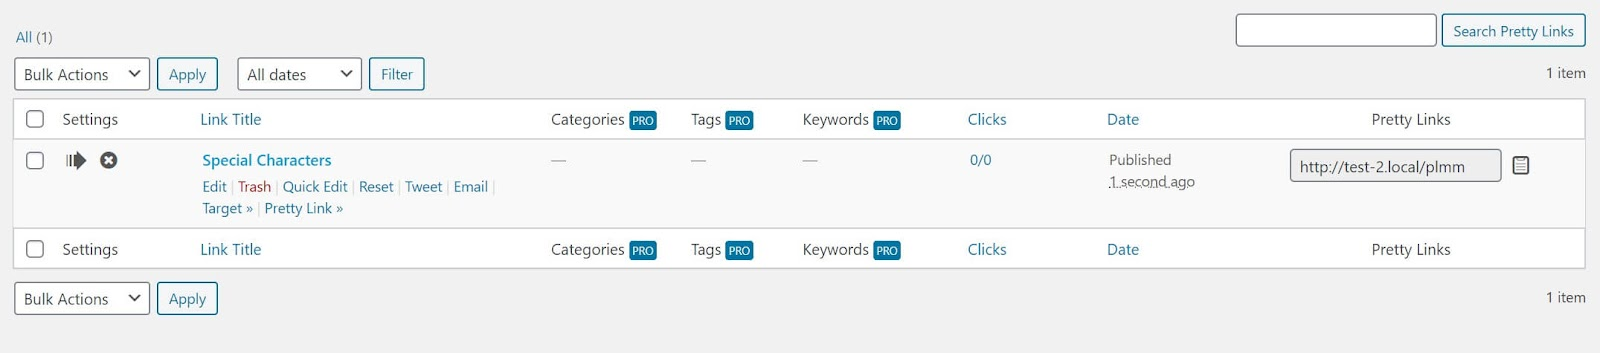 How to make quick edits in the Pretty Links dashboard